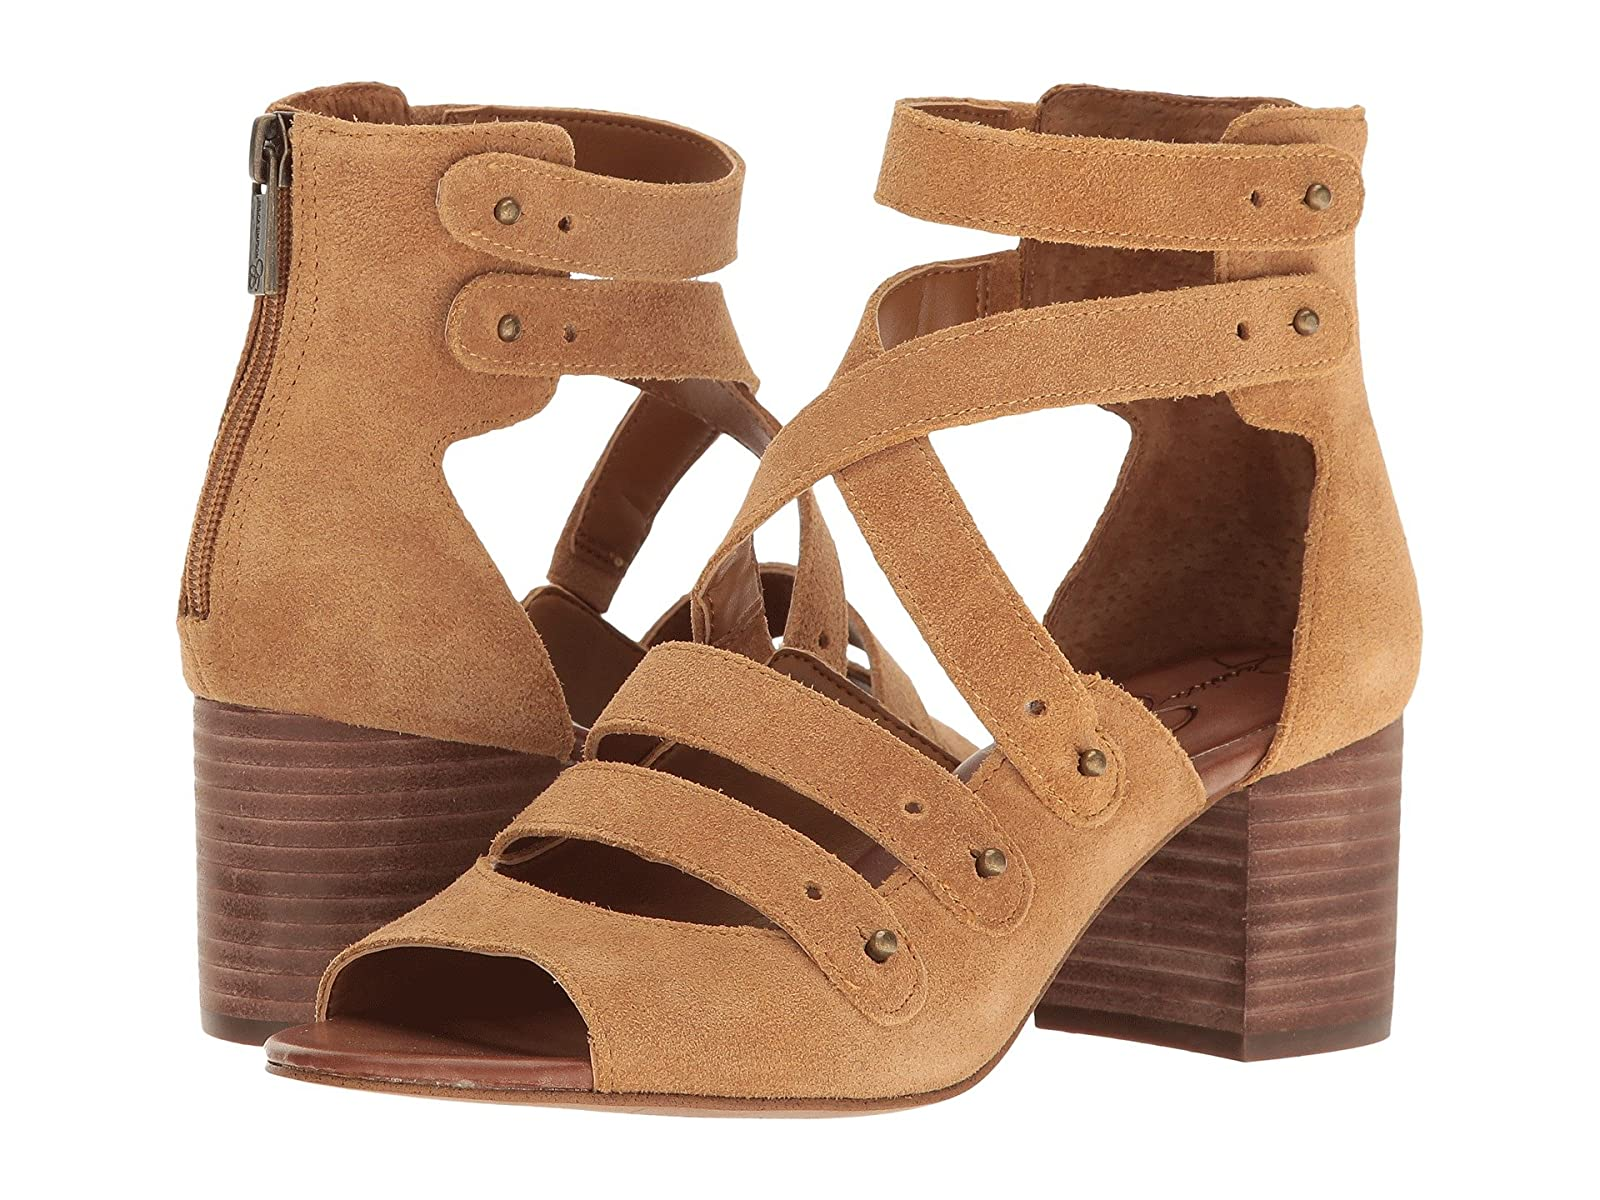 Jessica Simpson HalacieCheap and distinctive eye-catching shoes